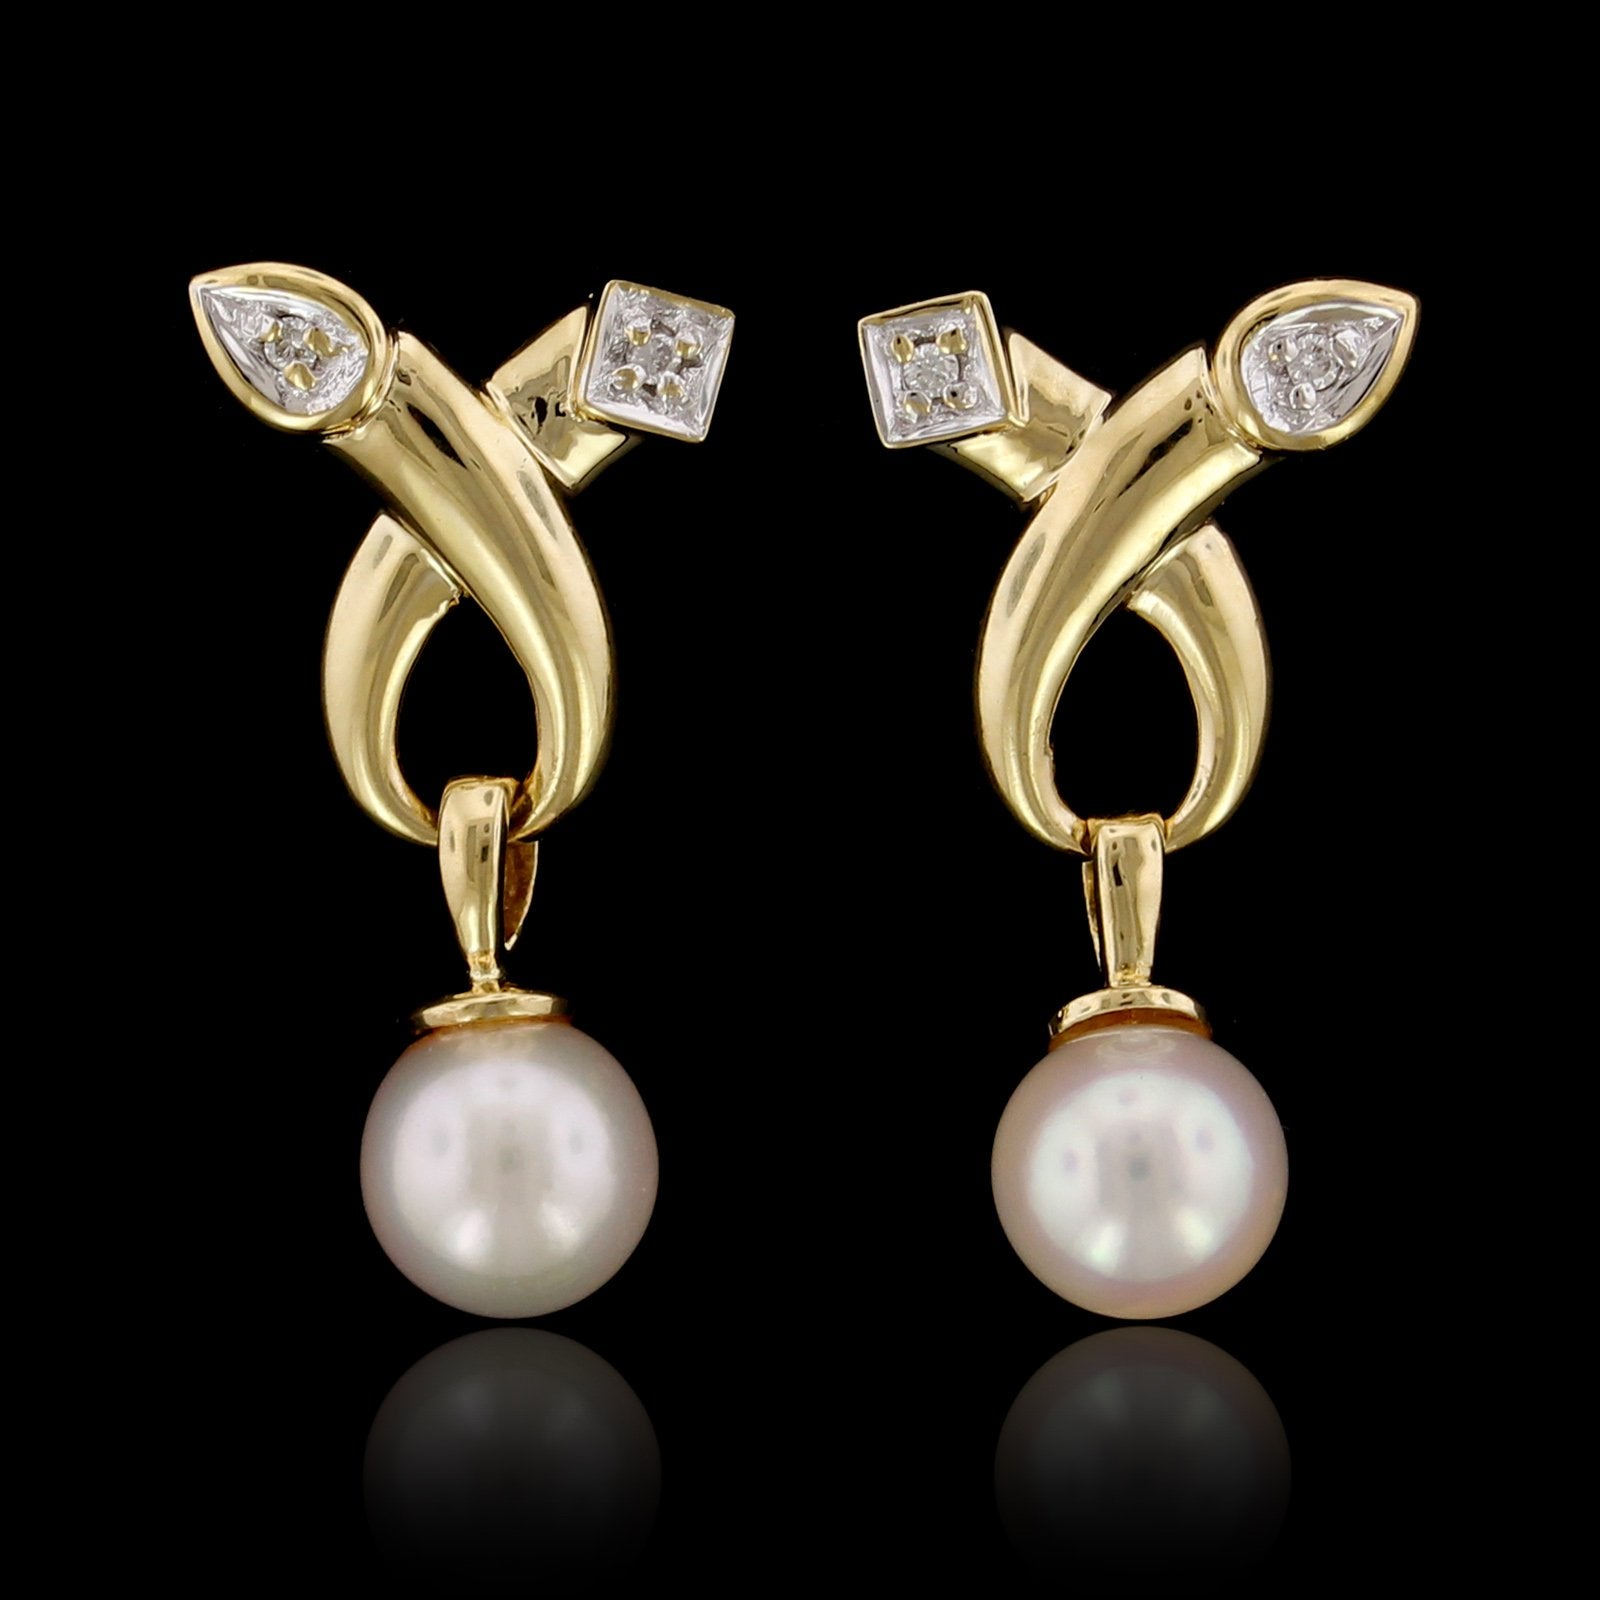 14K Yellow Gold Estate Cultured Pearl and Diamond Earrings